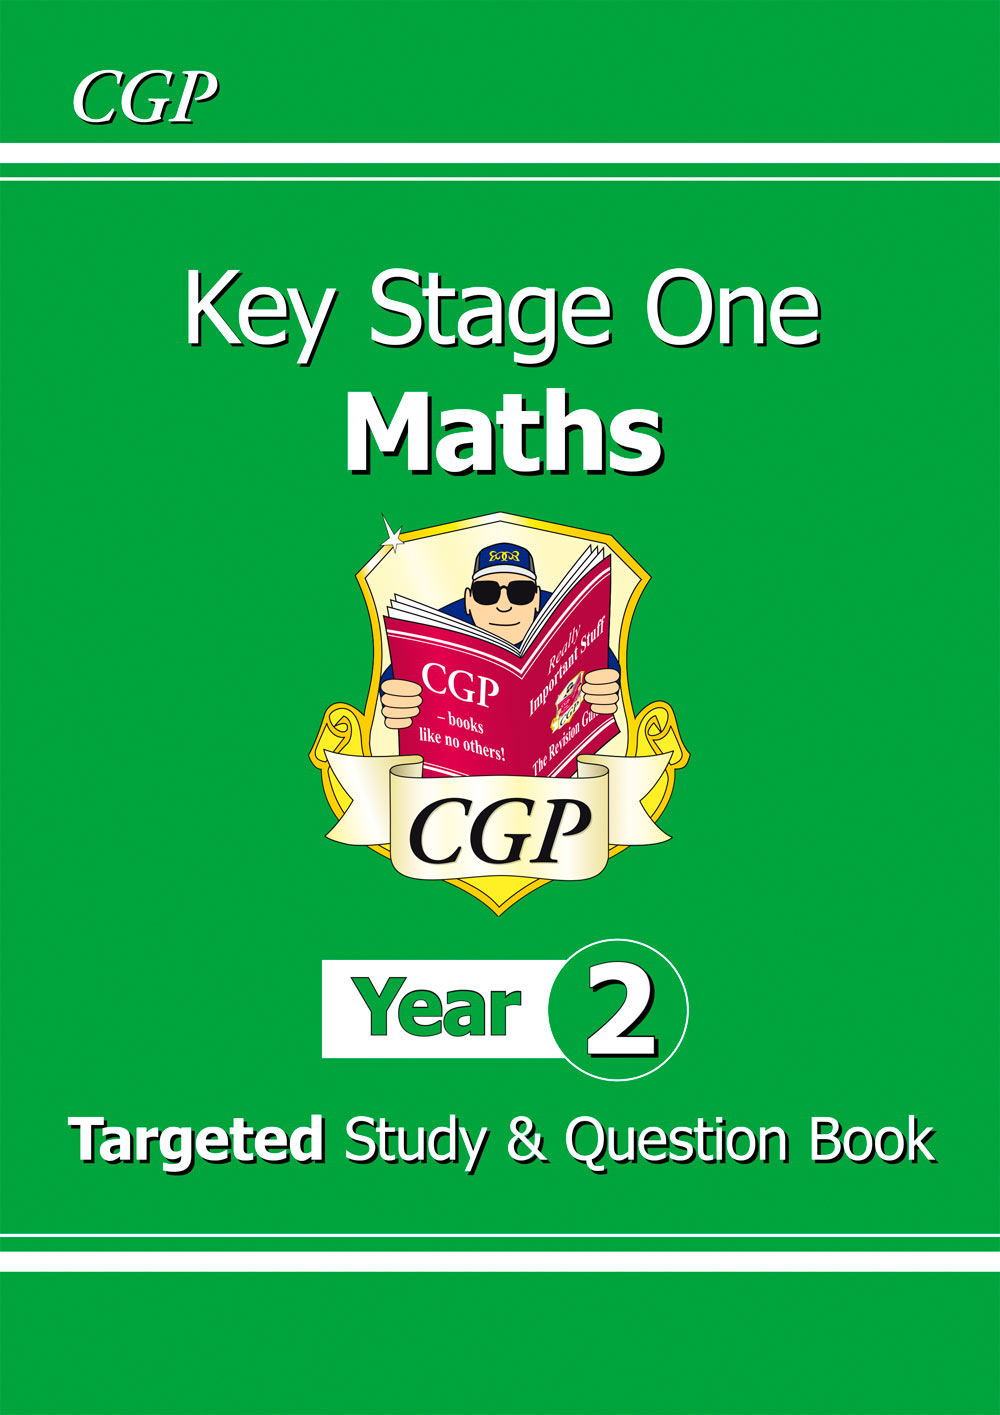 M2R11 - KS1 Maths Targeted Study & Question Book - Year 2